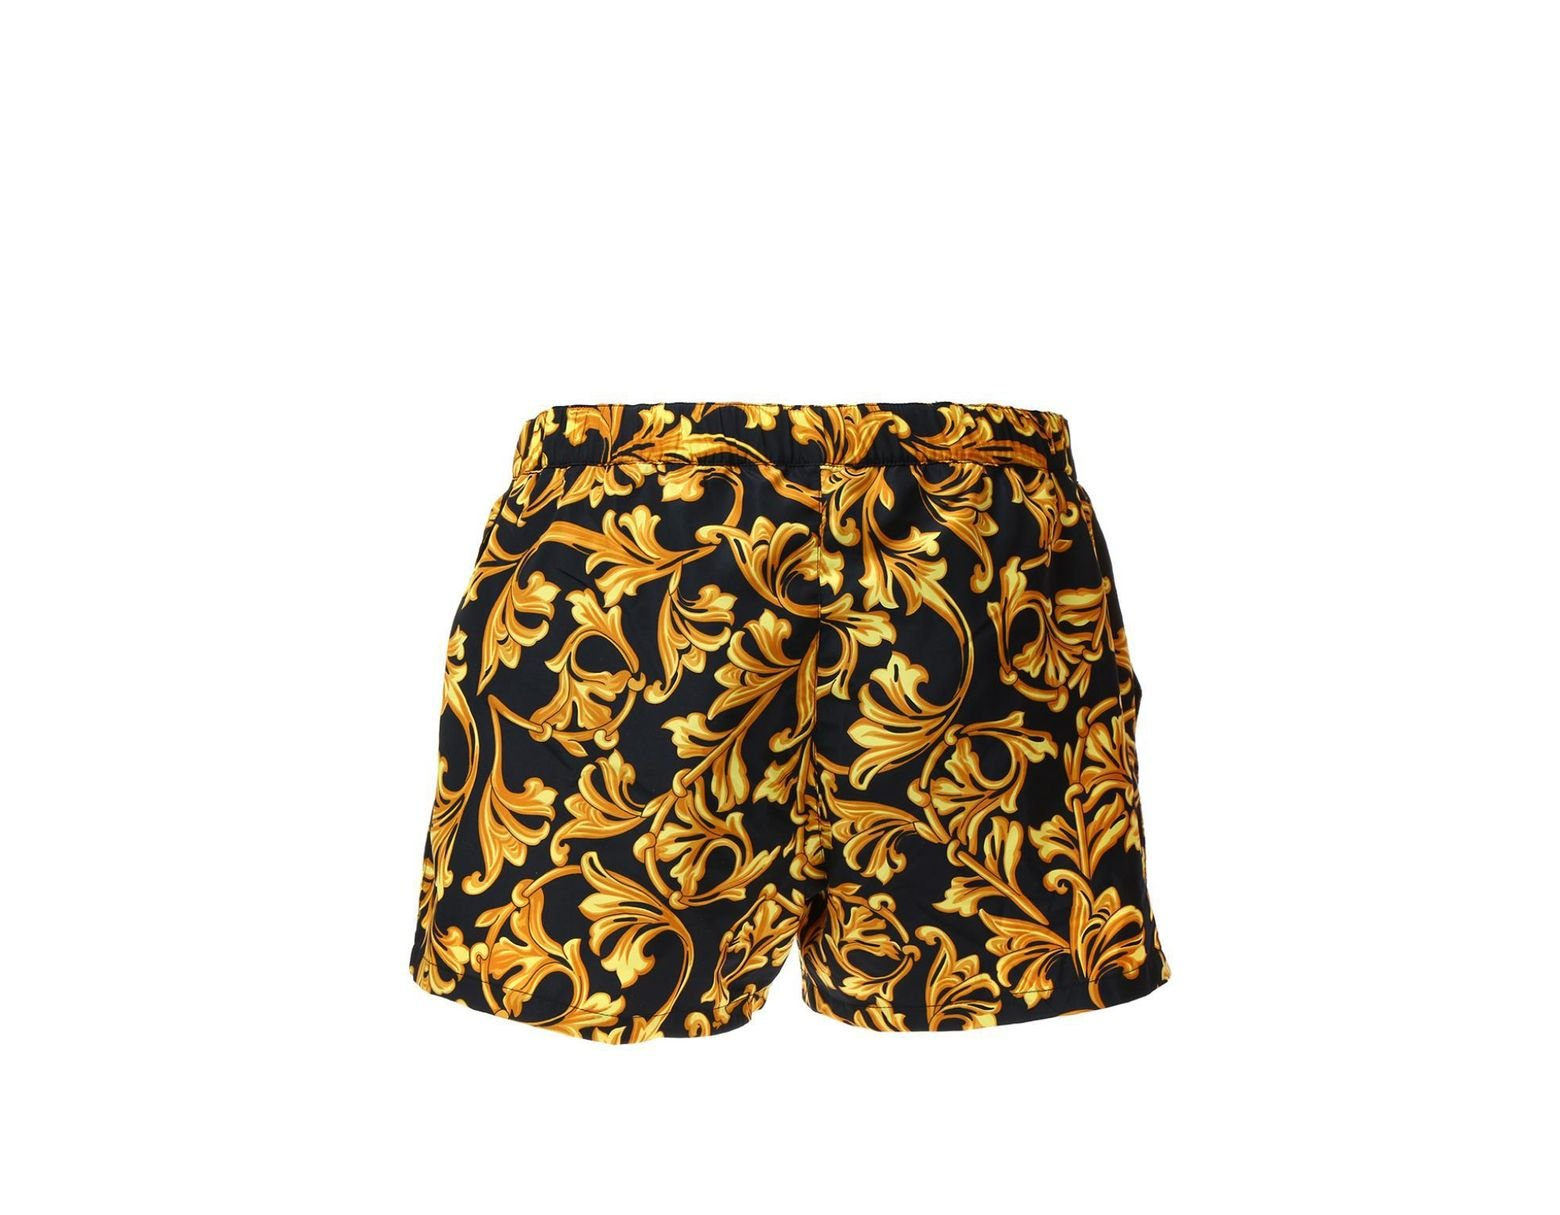 c905d46005 Versace Baroque Pattern Swim Shorts in Black for Men - Lyst